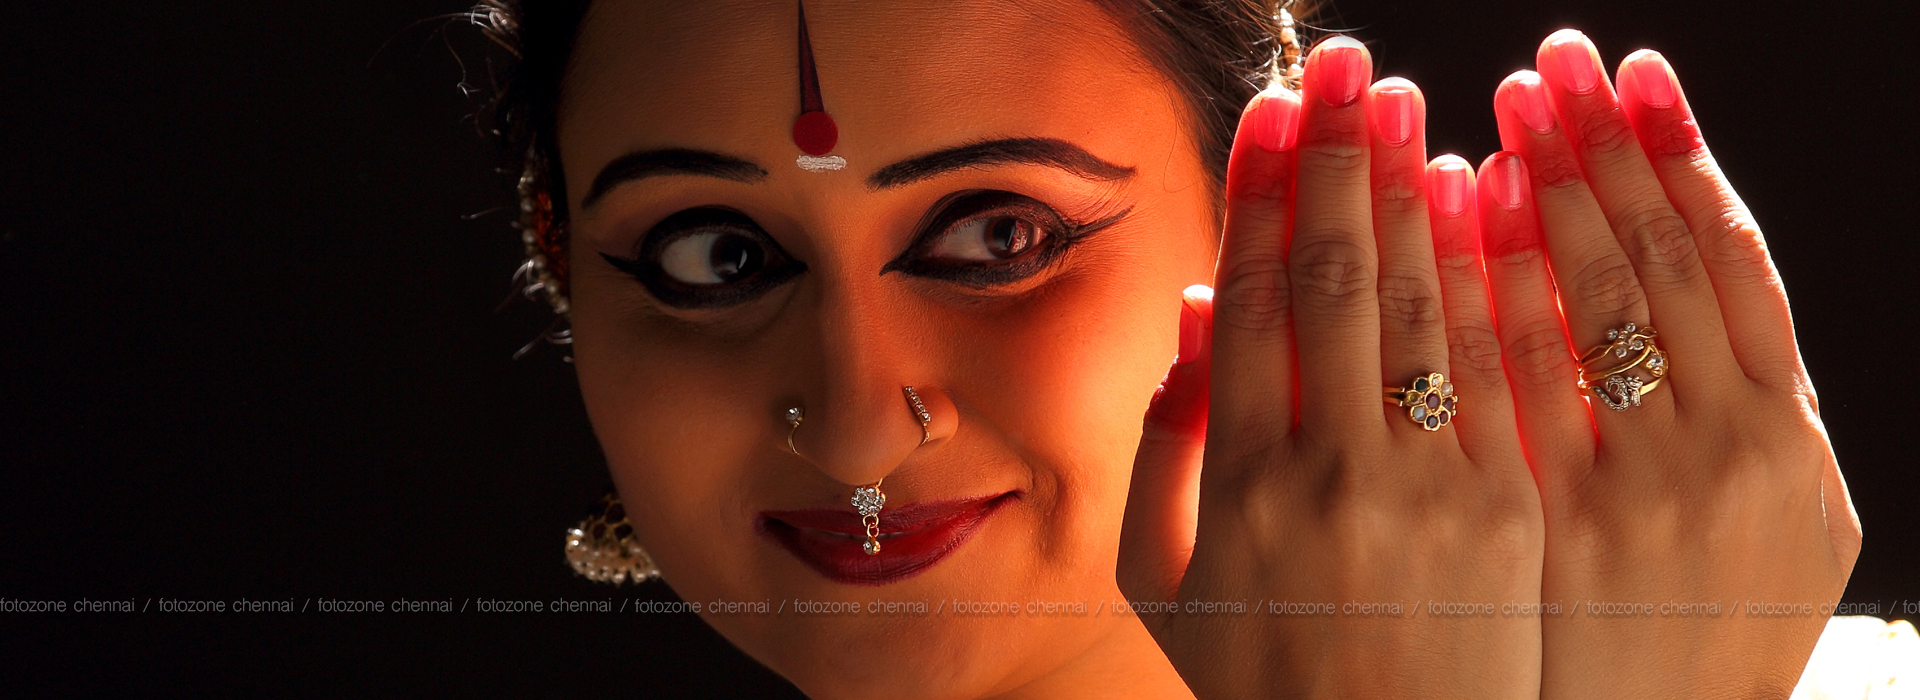 bharatanatyam classic dance photo shoot